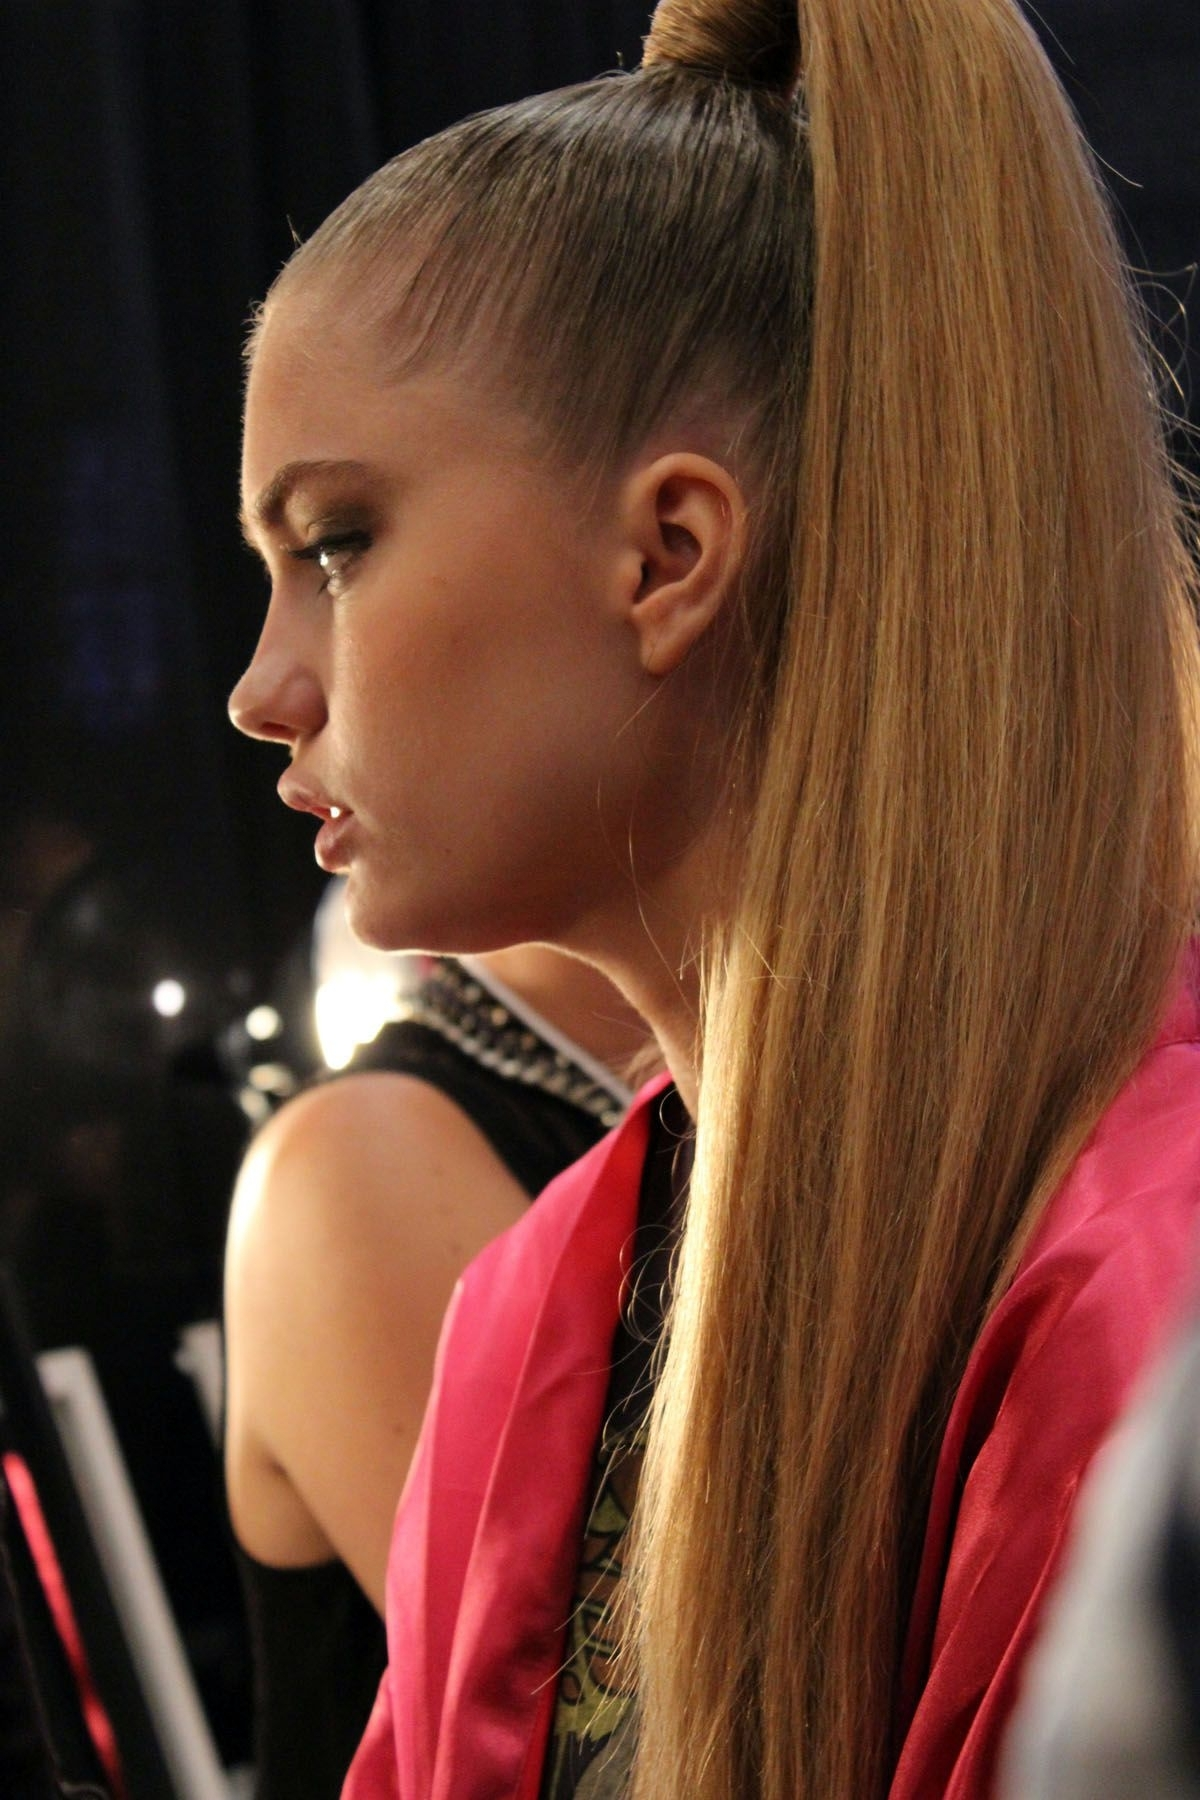 Trendy Bold And Blonde High Ponytail Hairstyles For Ponytail Hairstyle Miami Beach Fashion Week Swim Sleek High Ponytail (View 18 of 20)